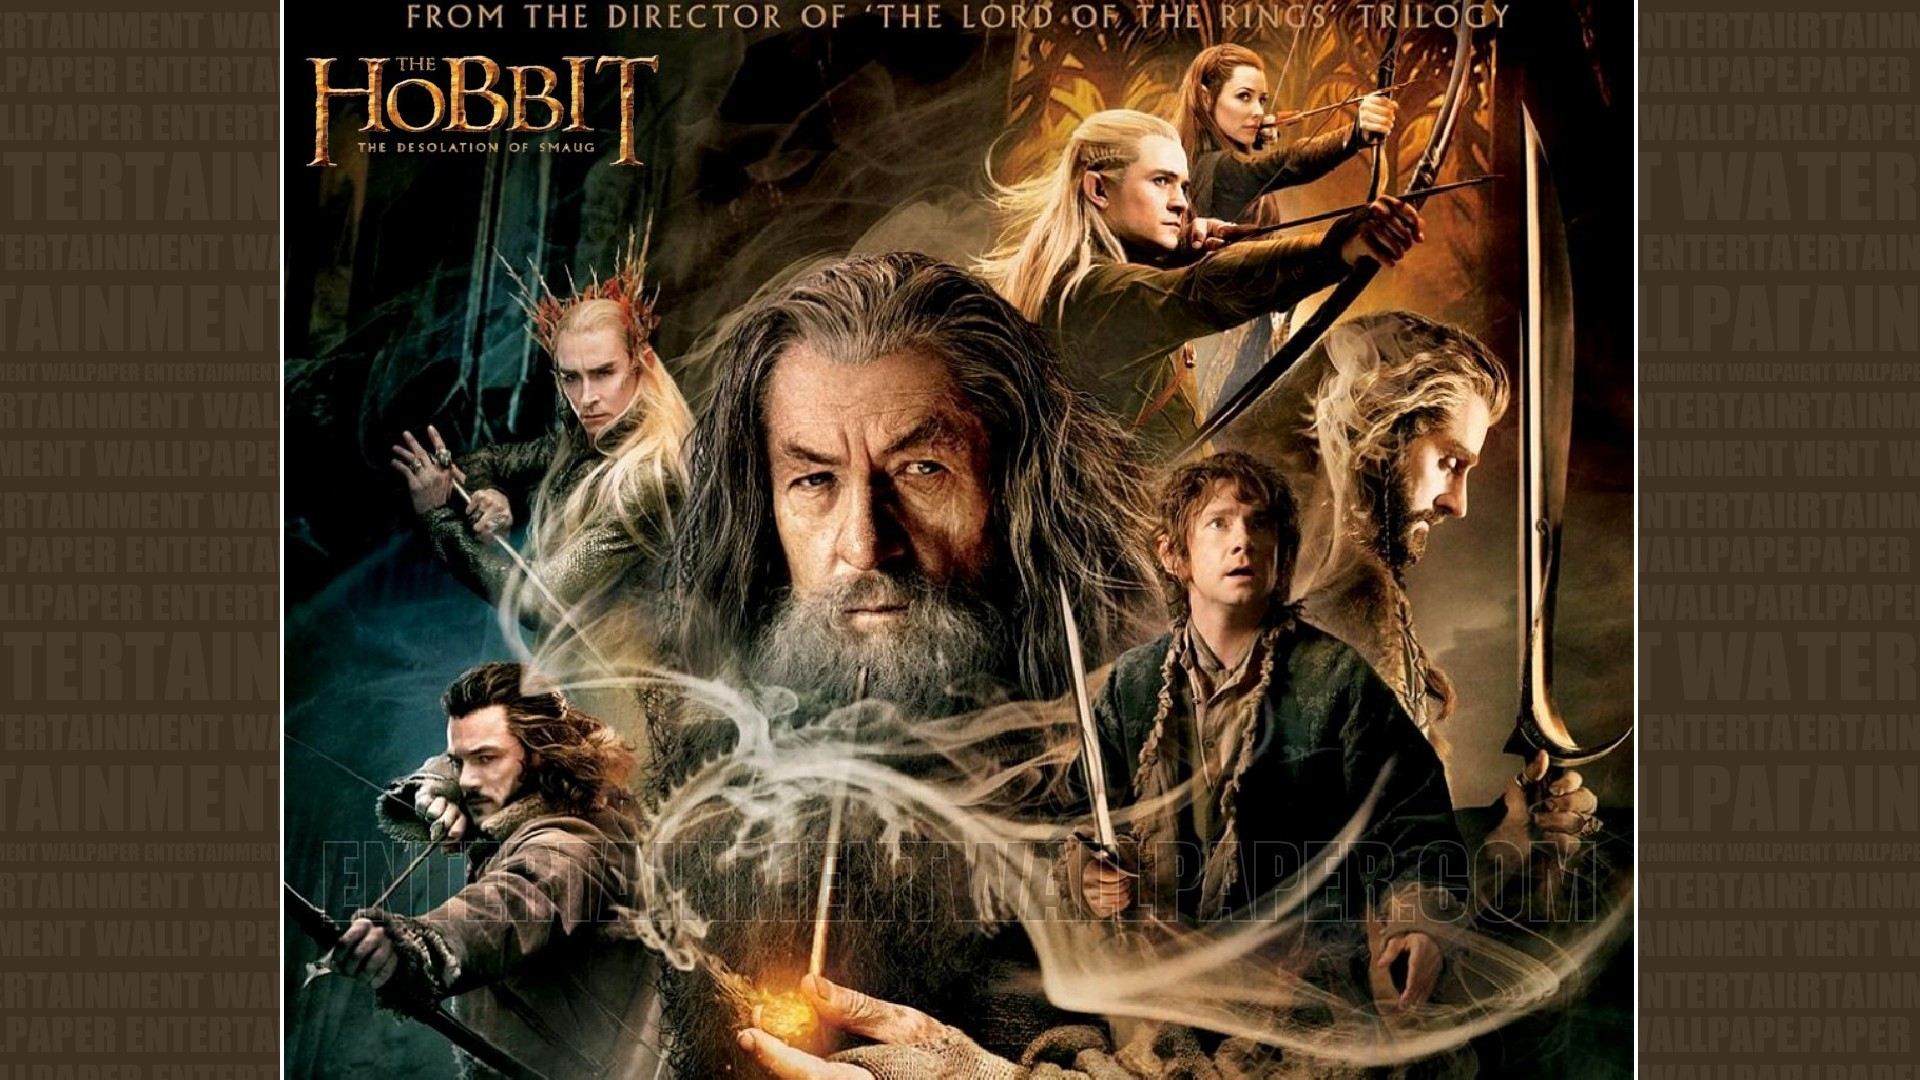 1920x1080 The Hobbit The Desolation of Smaug Wallpaper